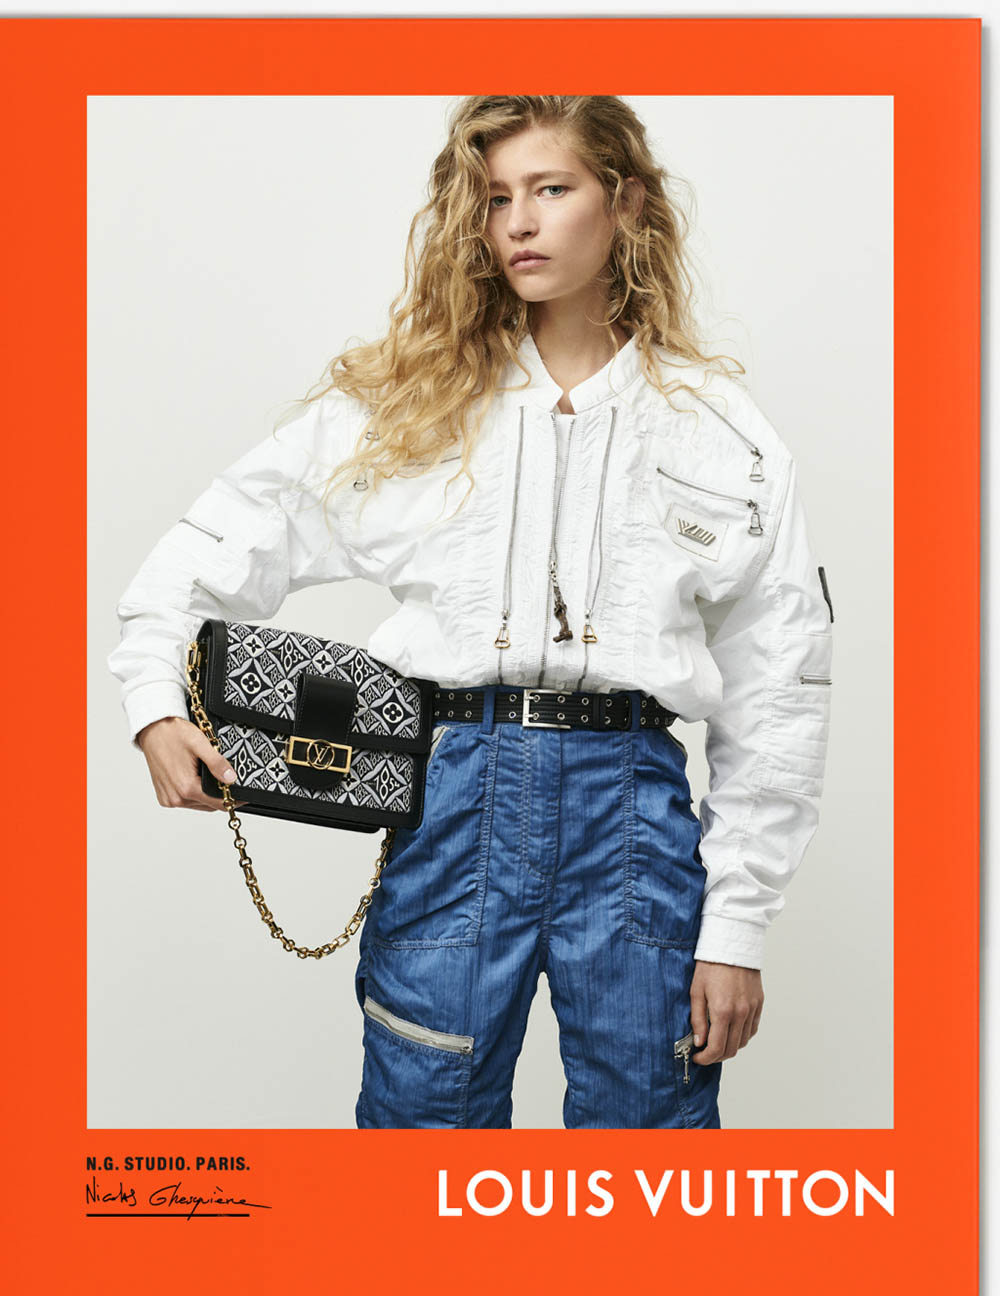 Louis Vuitton Fall Winter 2020 Campaign